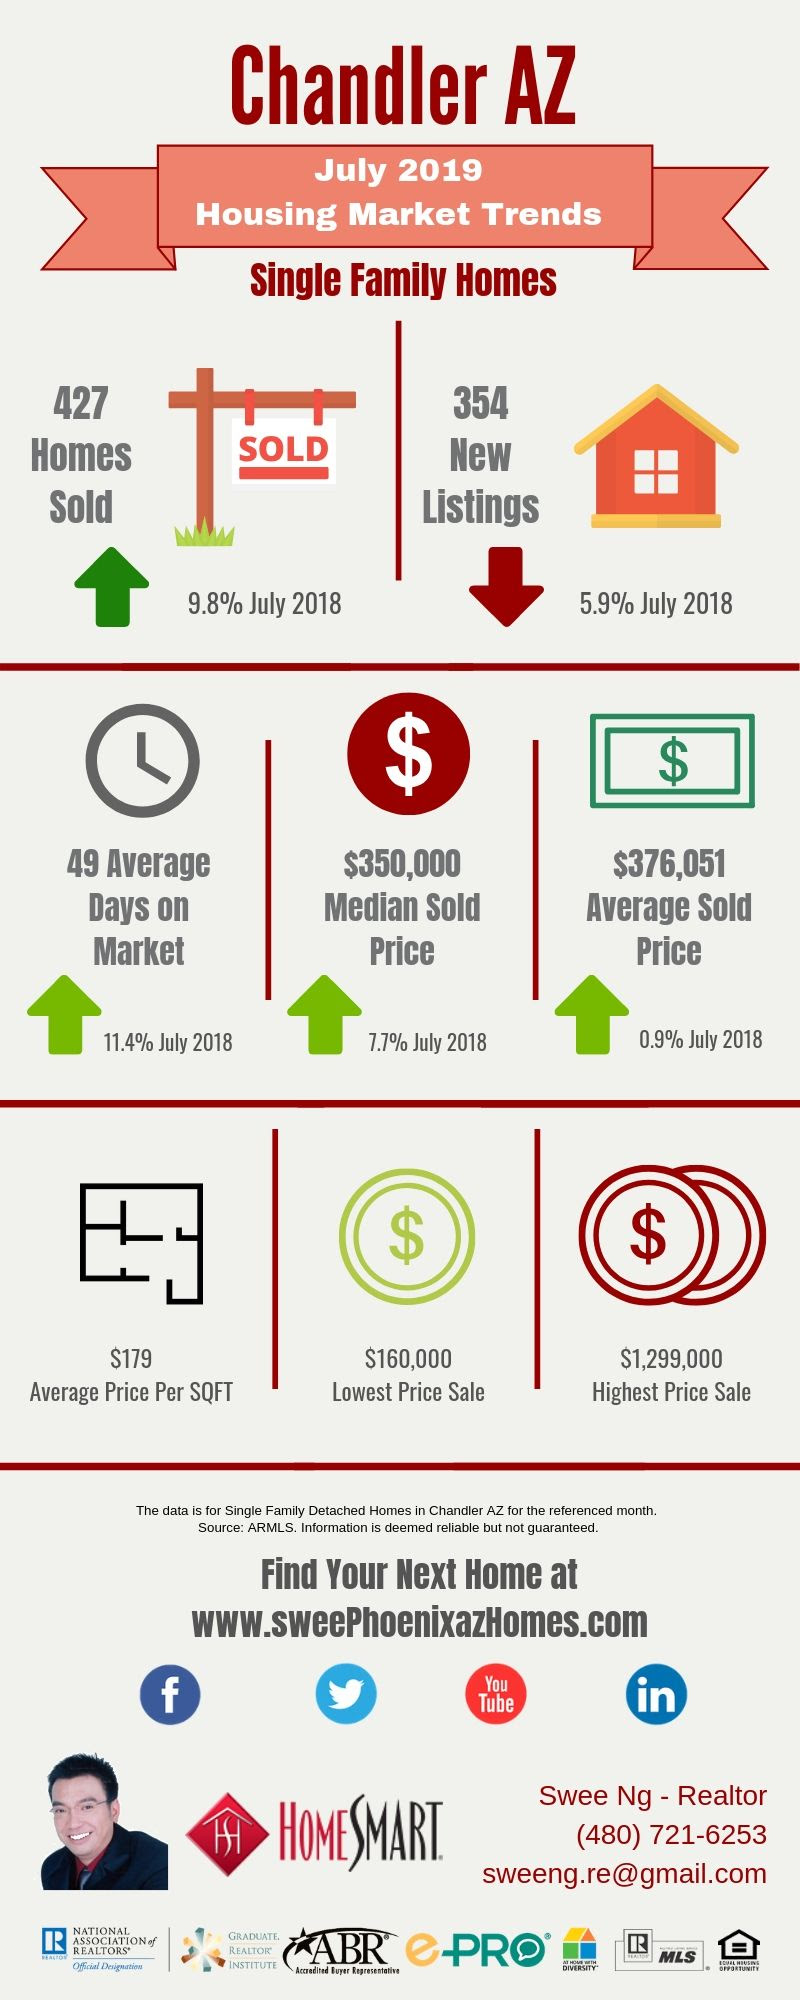 July 2019 Chandler AZ Housing Market Update by Swee Ng, House Value and Real Estate Listings